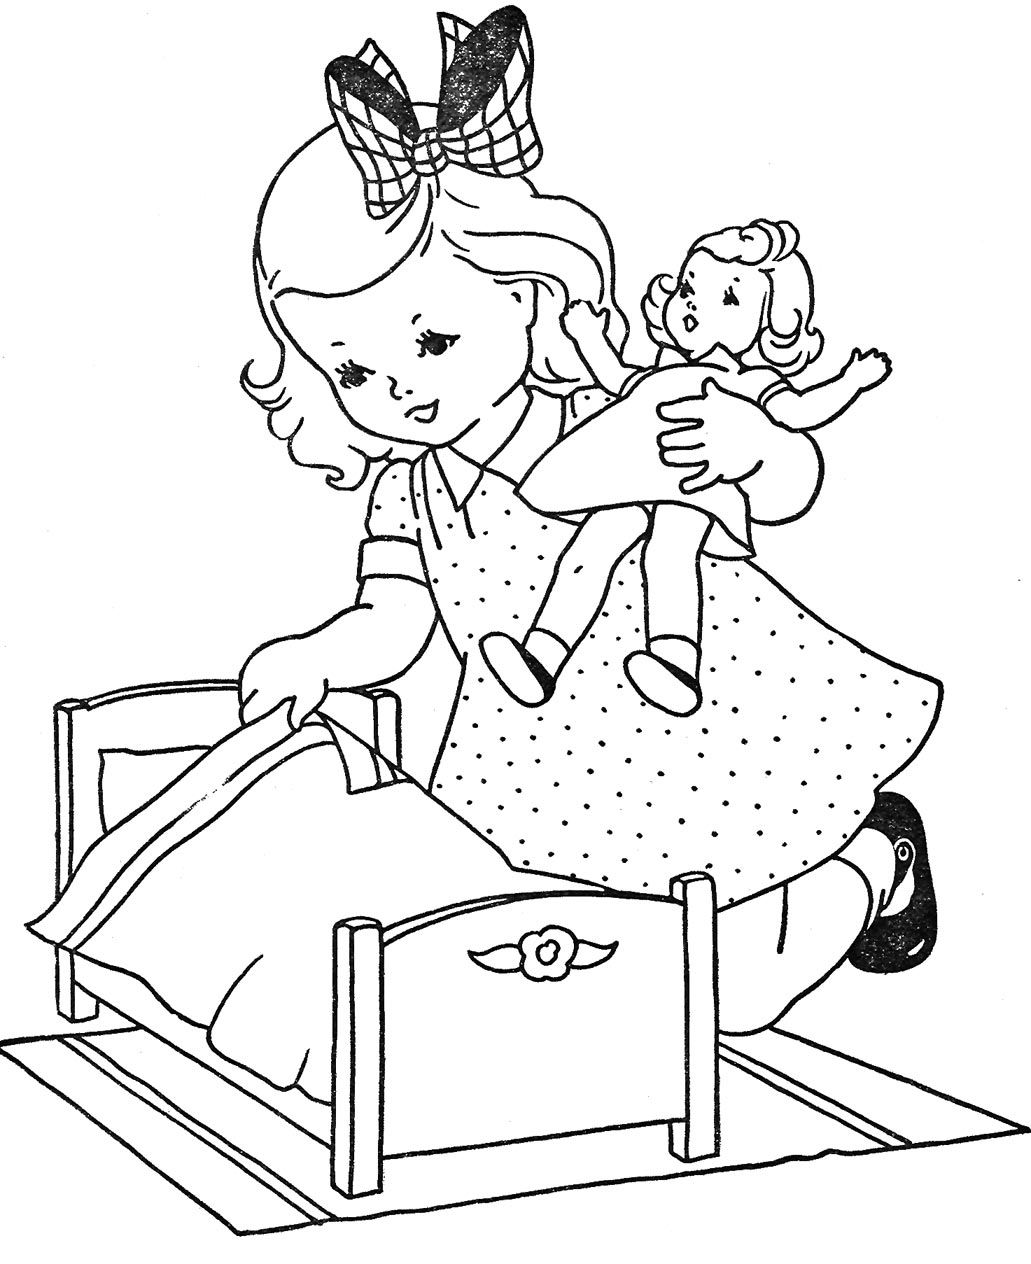 Cute coloring pages for girls and boys. Double click on